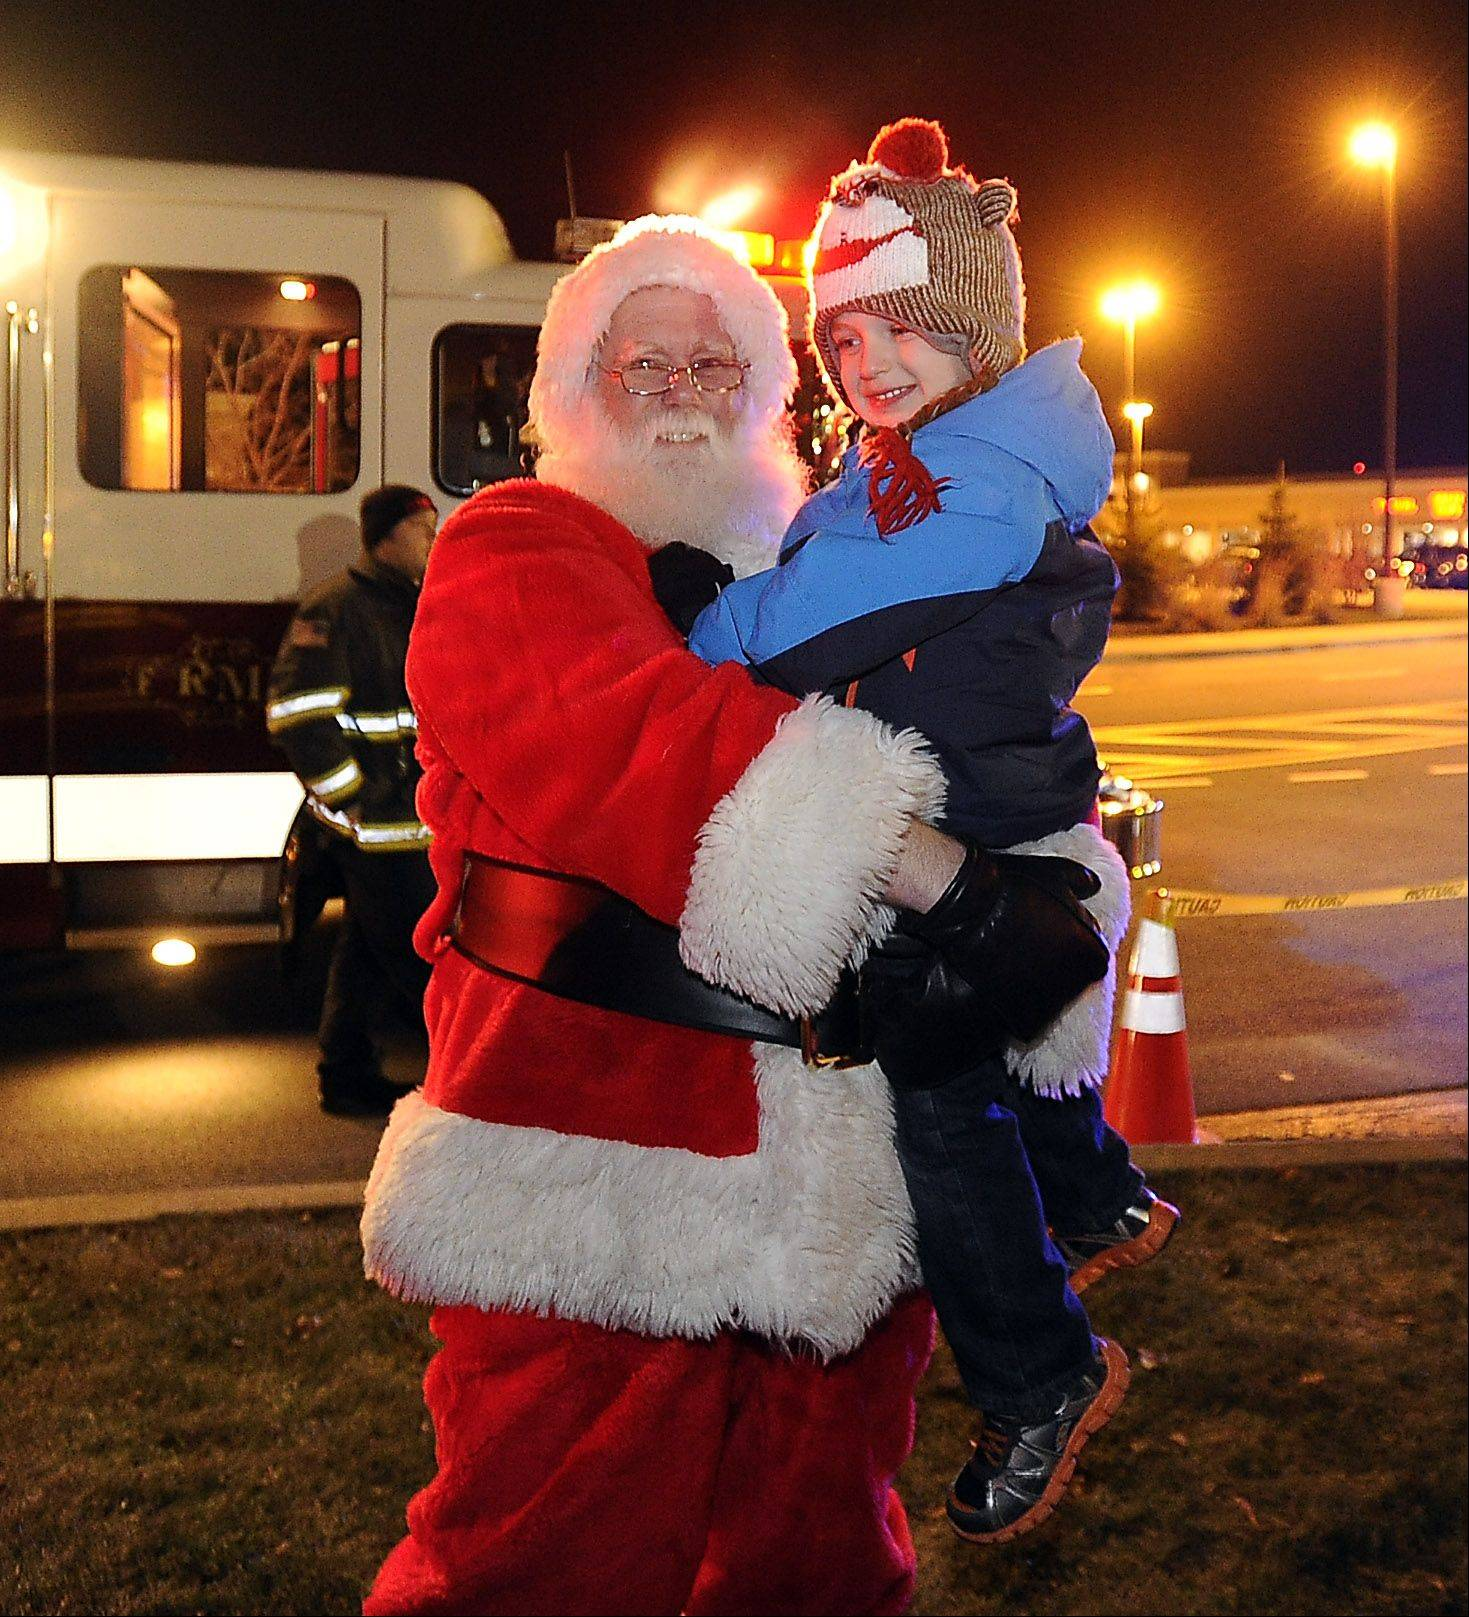 Rolling Meadows Holiday Tree Lighting ceremony welcomed Santa with his pal Jackson Maloney, 3, of Rolling Meadows who was first to greet him with his wish list.